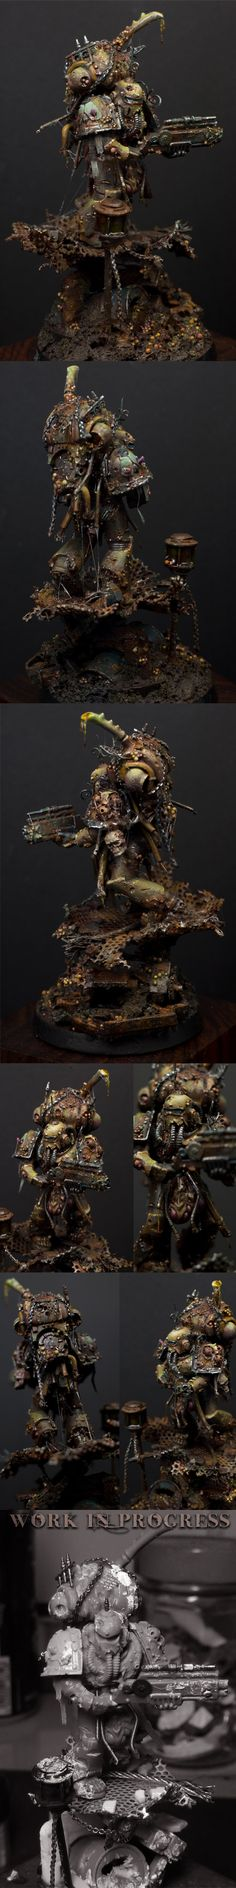 W40K - The Wayfarer / Nurgle Death Guard Fallen (by jarhead)